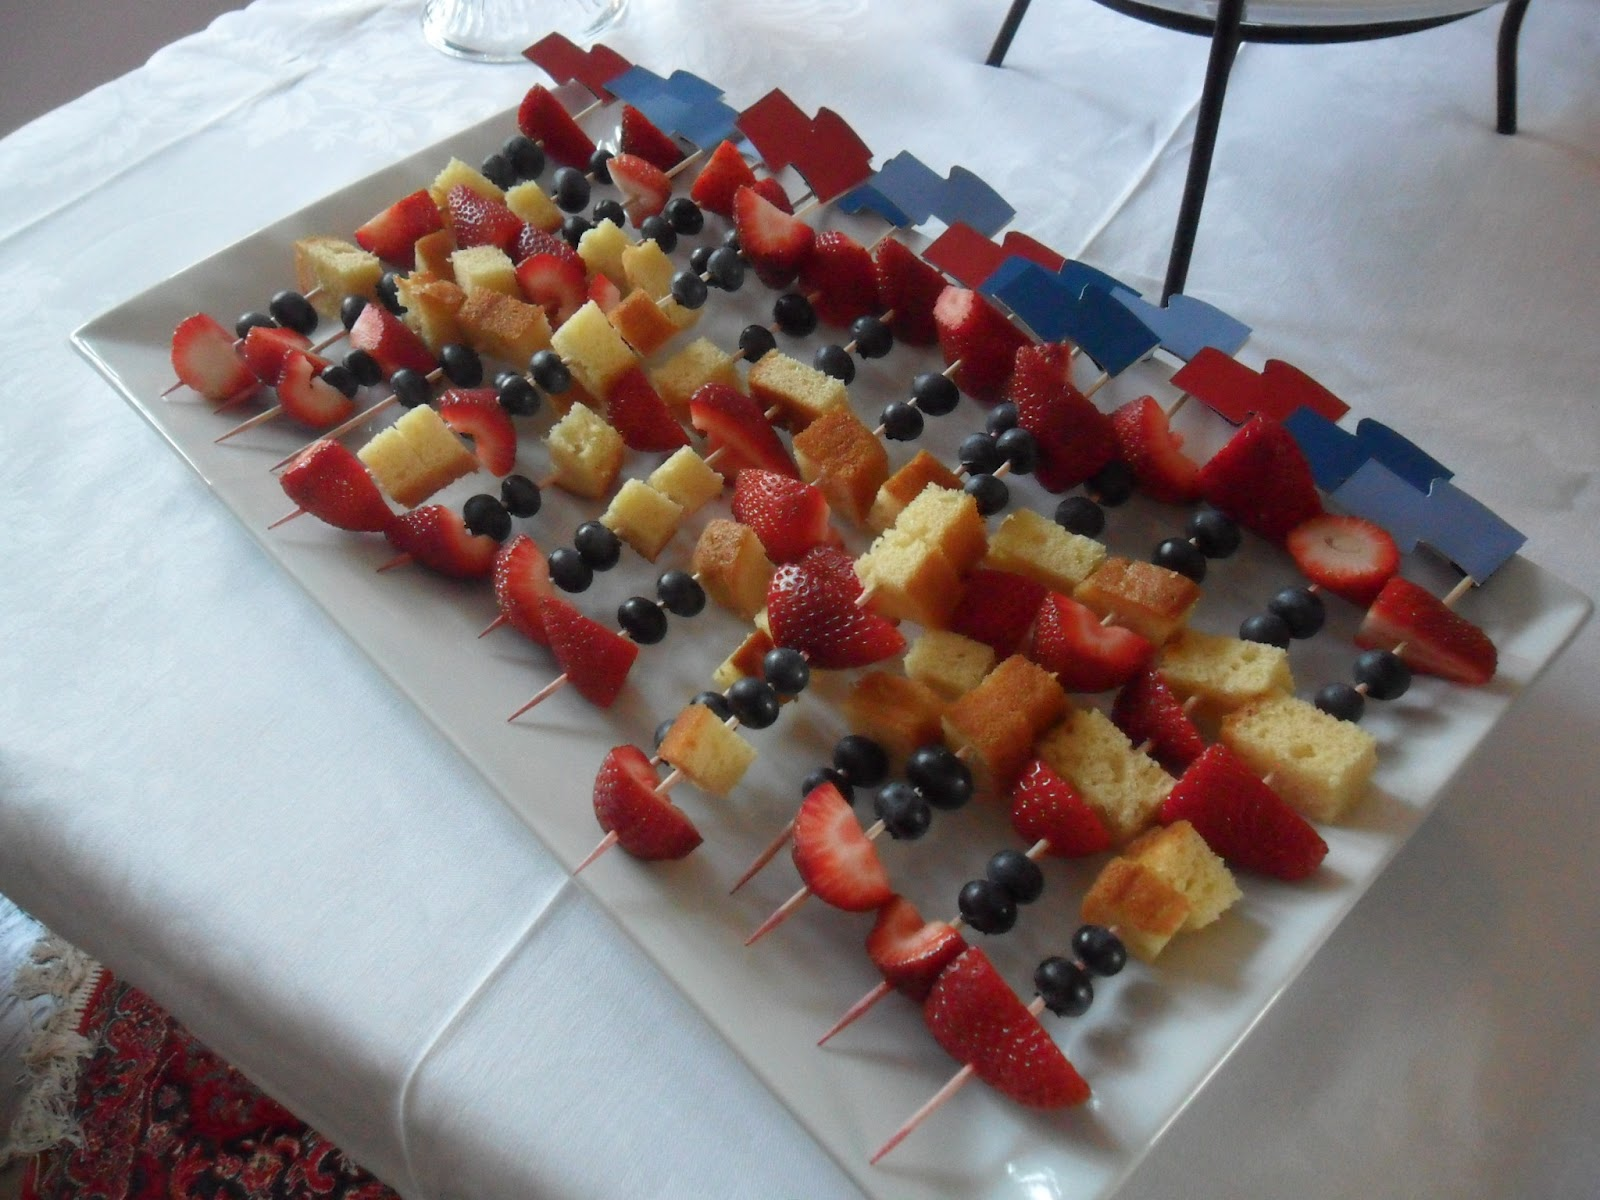 Paint Sample Cards Were Utilized Again, Cut Into Wavy Flags And Attached To  The Fruity Skewers.